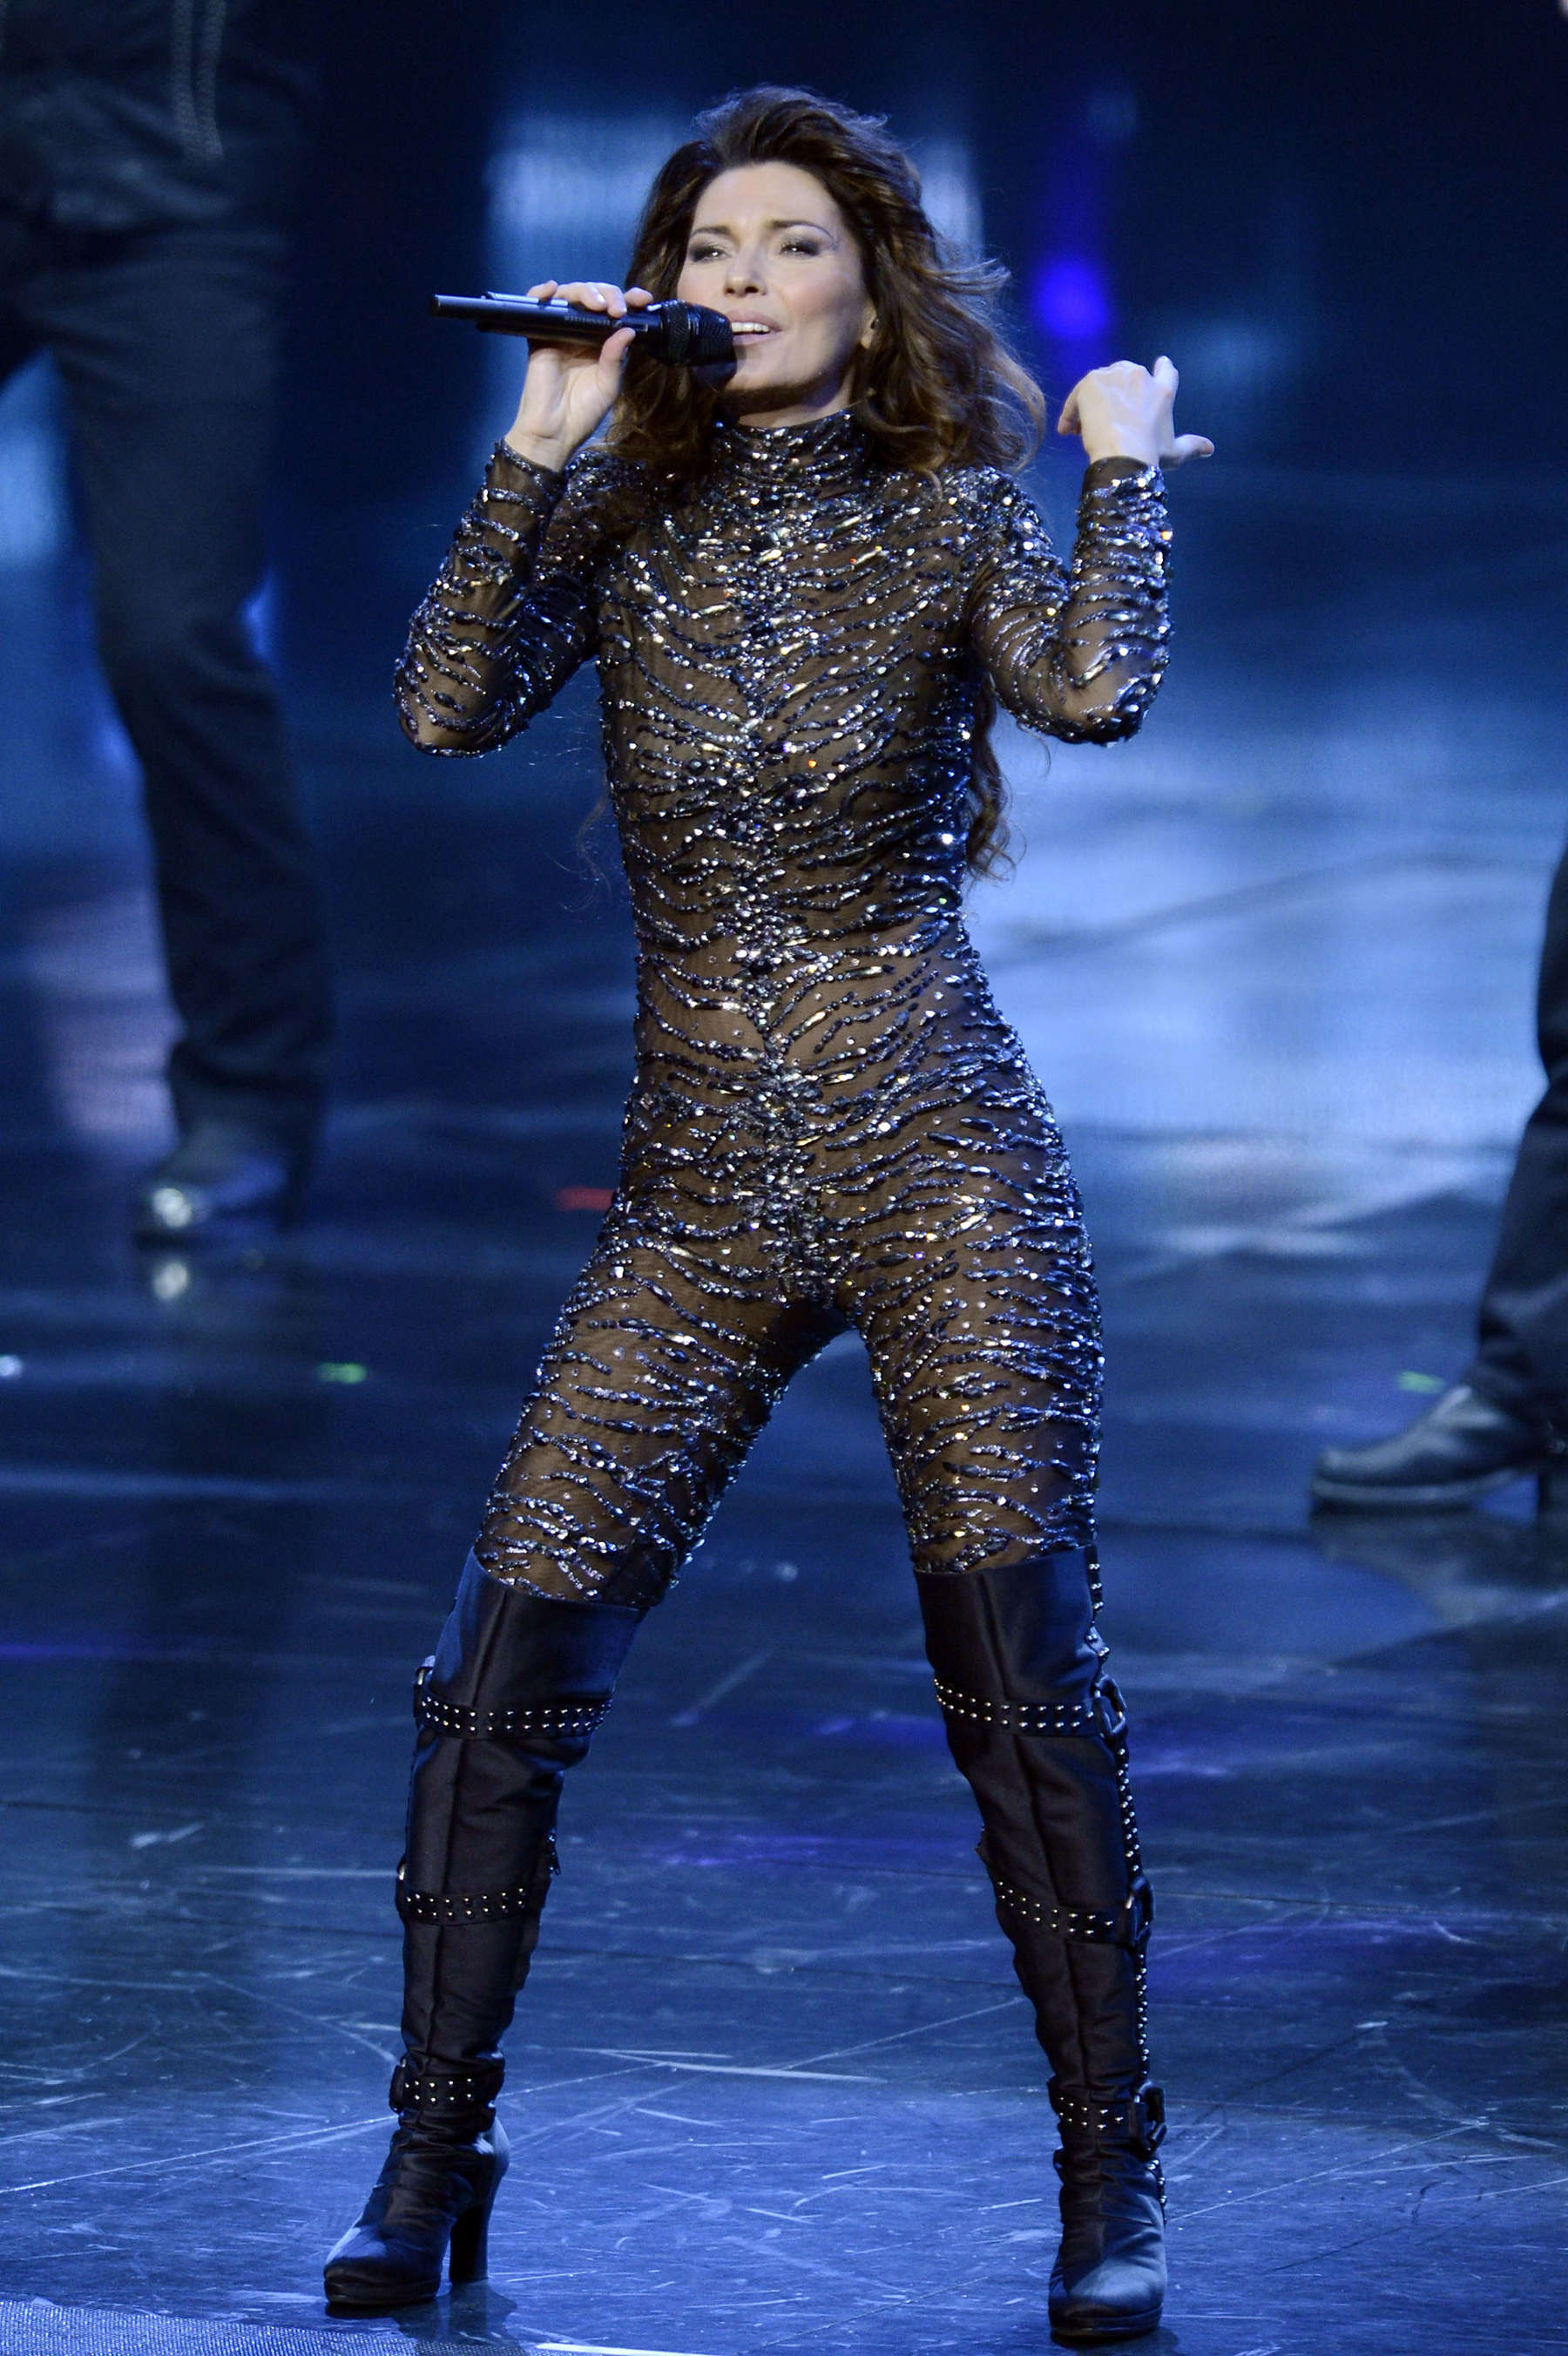 Back to post Shania Twain – Live at Shania Still the One debut show